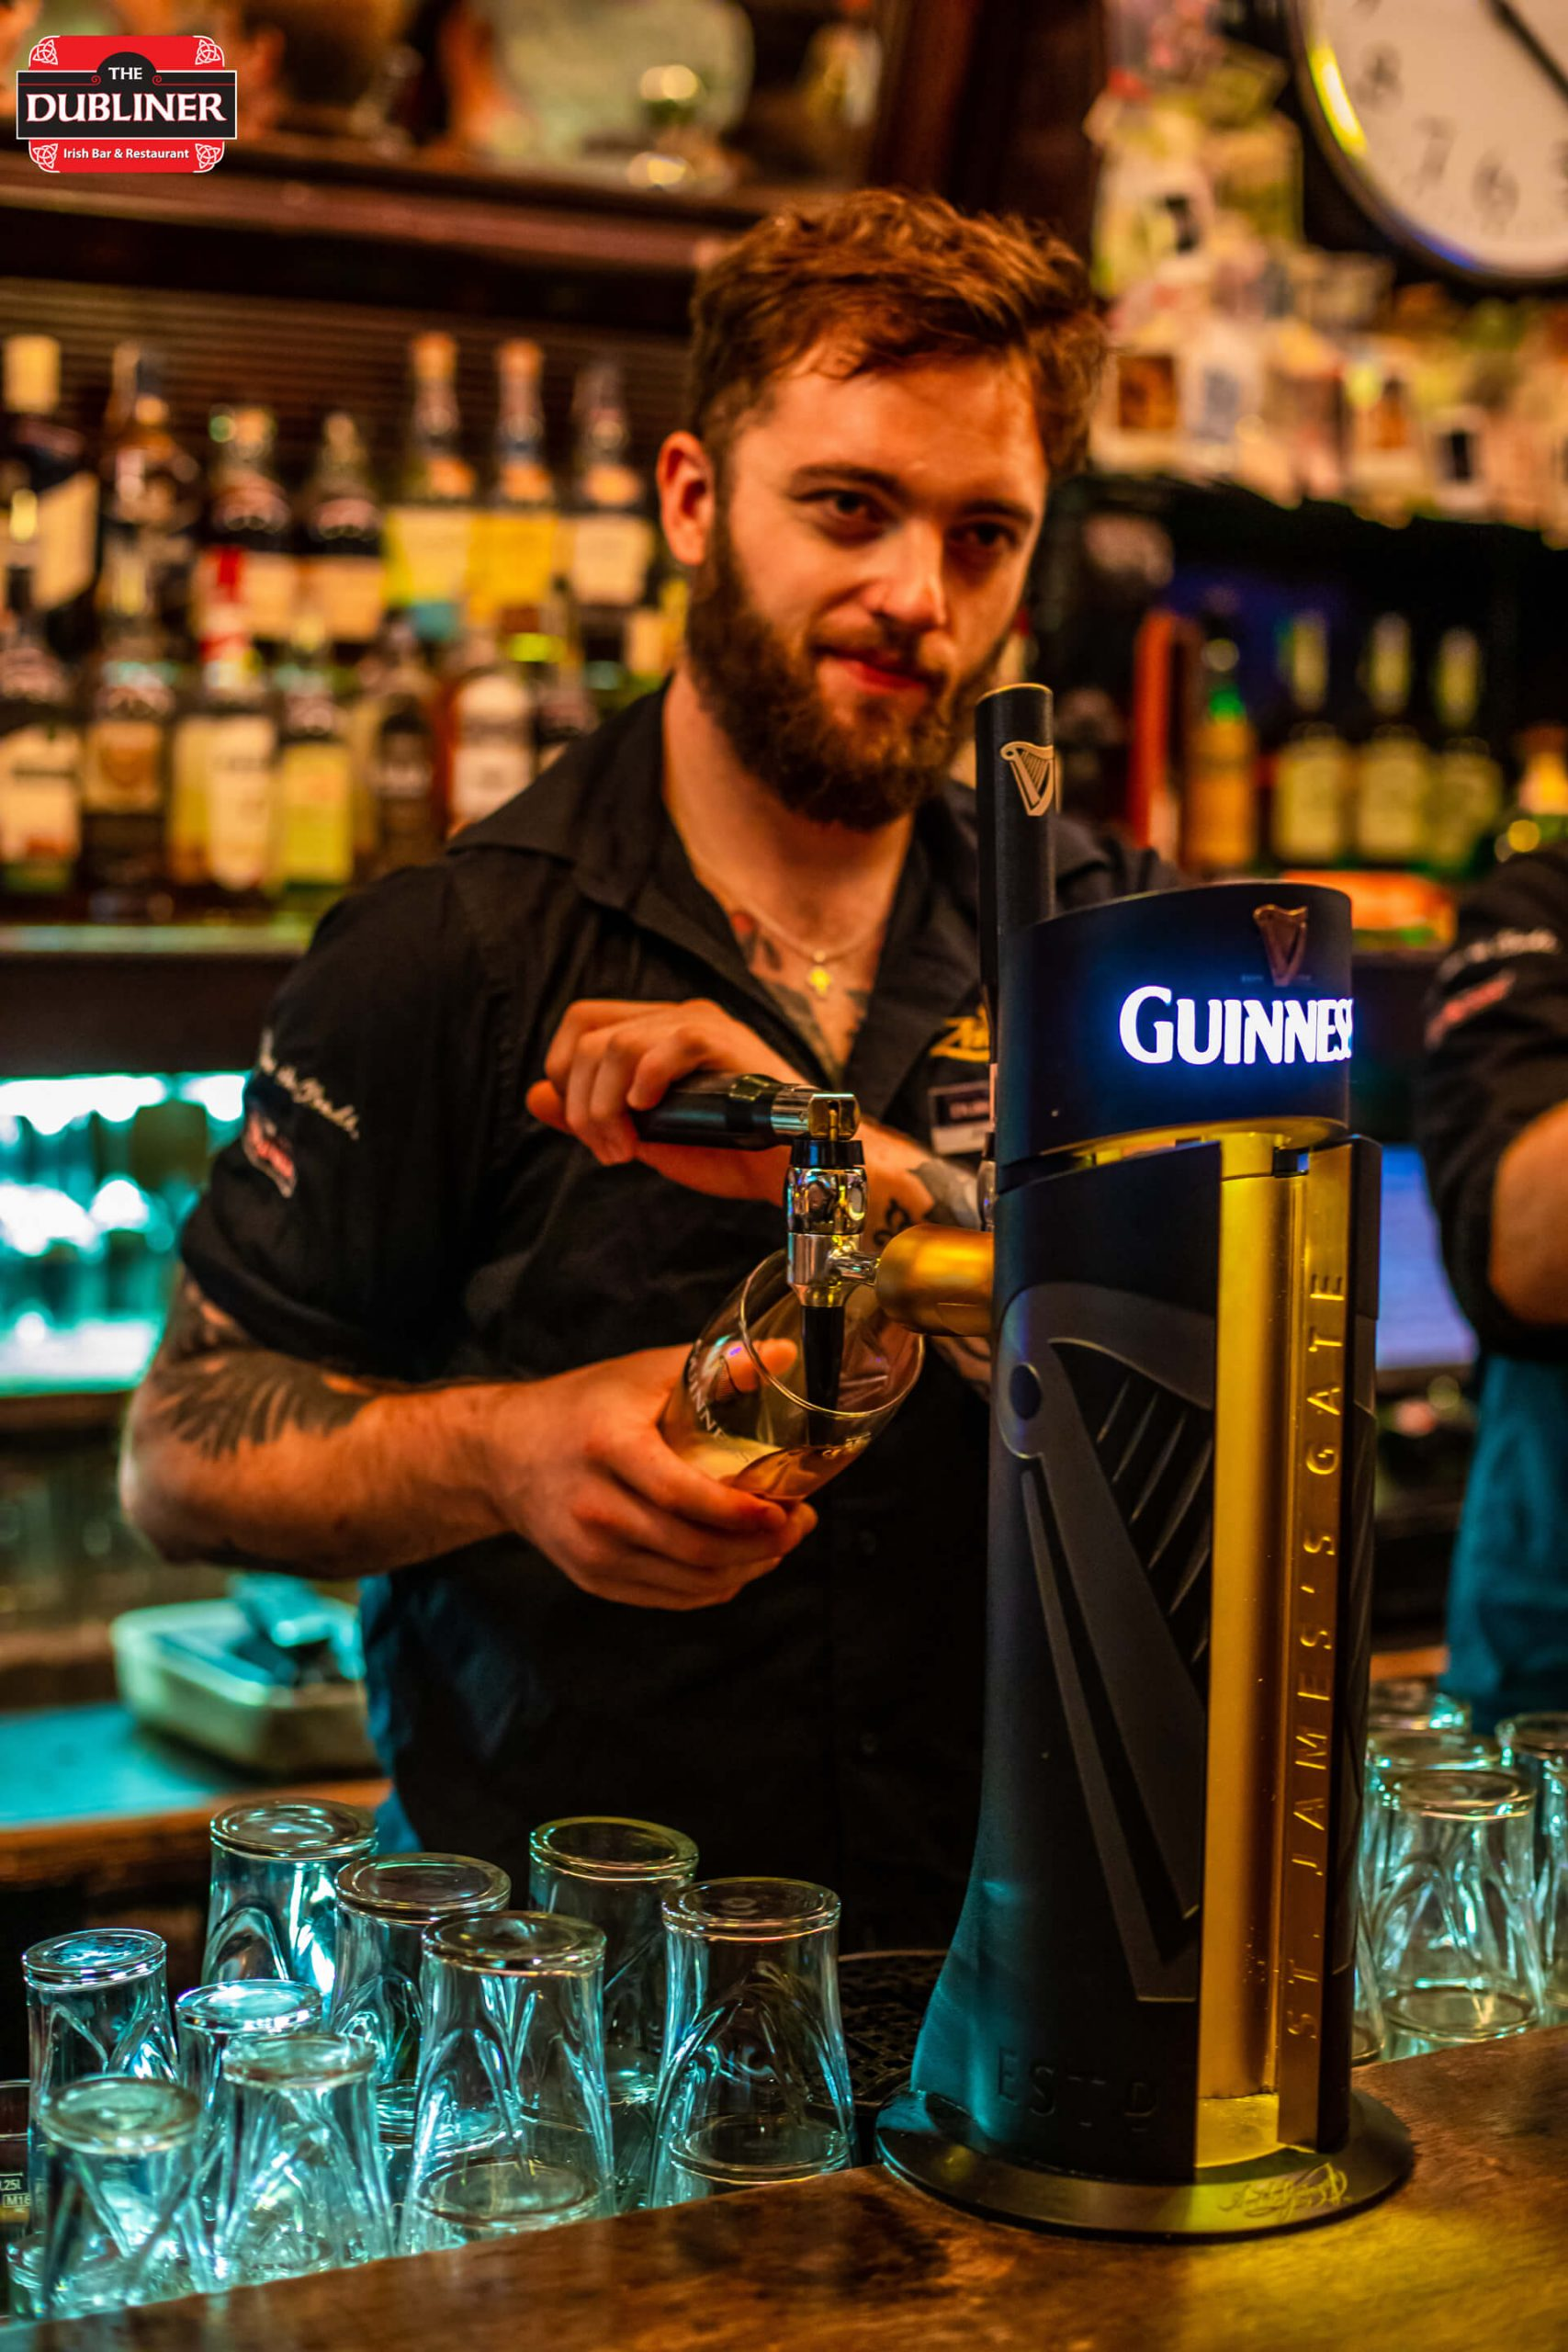 Gallery 075 | The Dubliner Prague Irish Bar